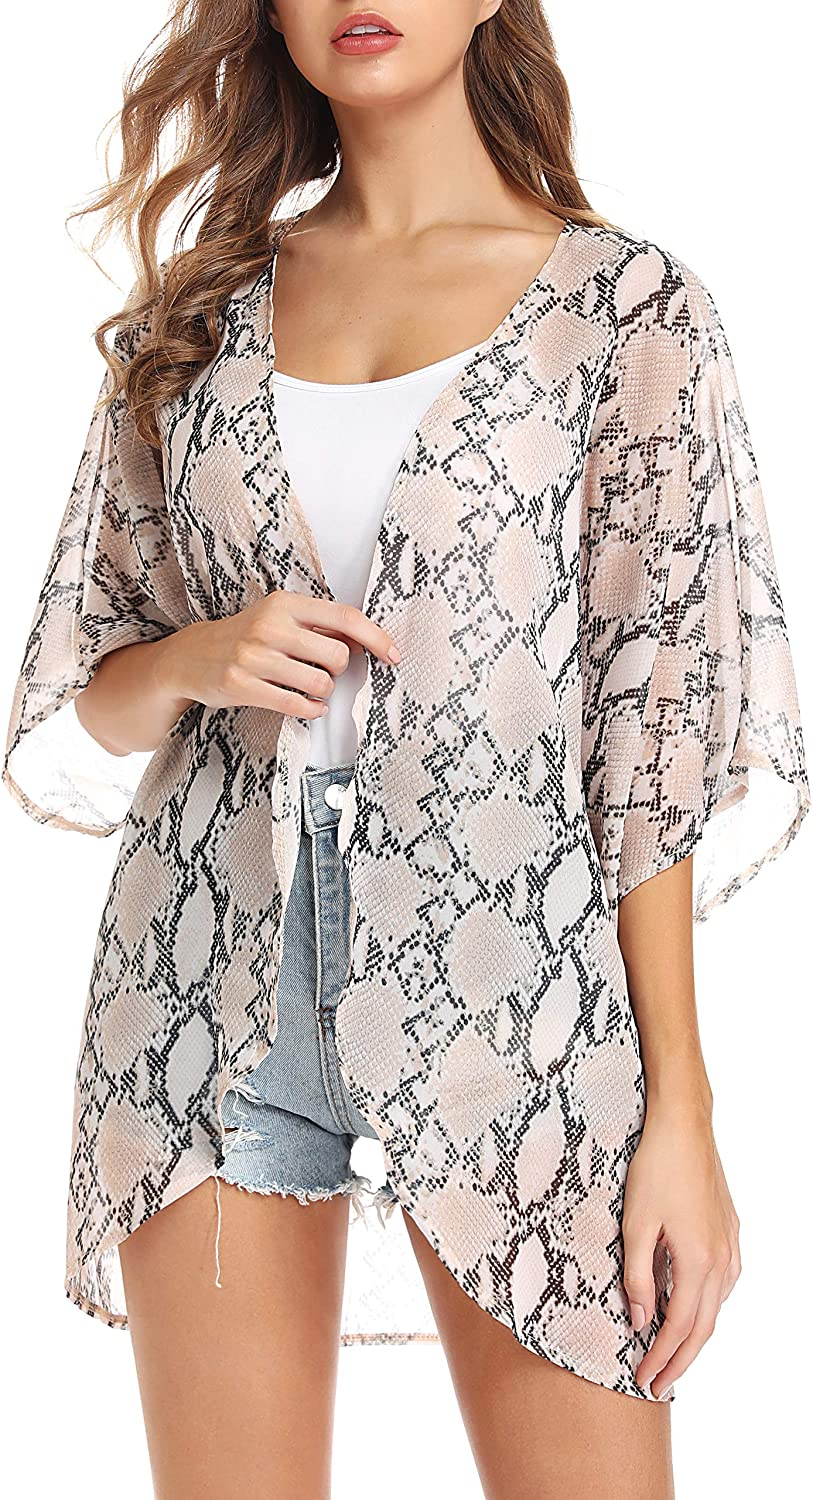 NORA TWIPS Womens Beach Cover up Summer Waterfall Cardigan Chiffon Kimono Tops Capes Sun Protection Floral Boho Blouse